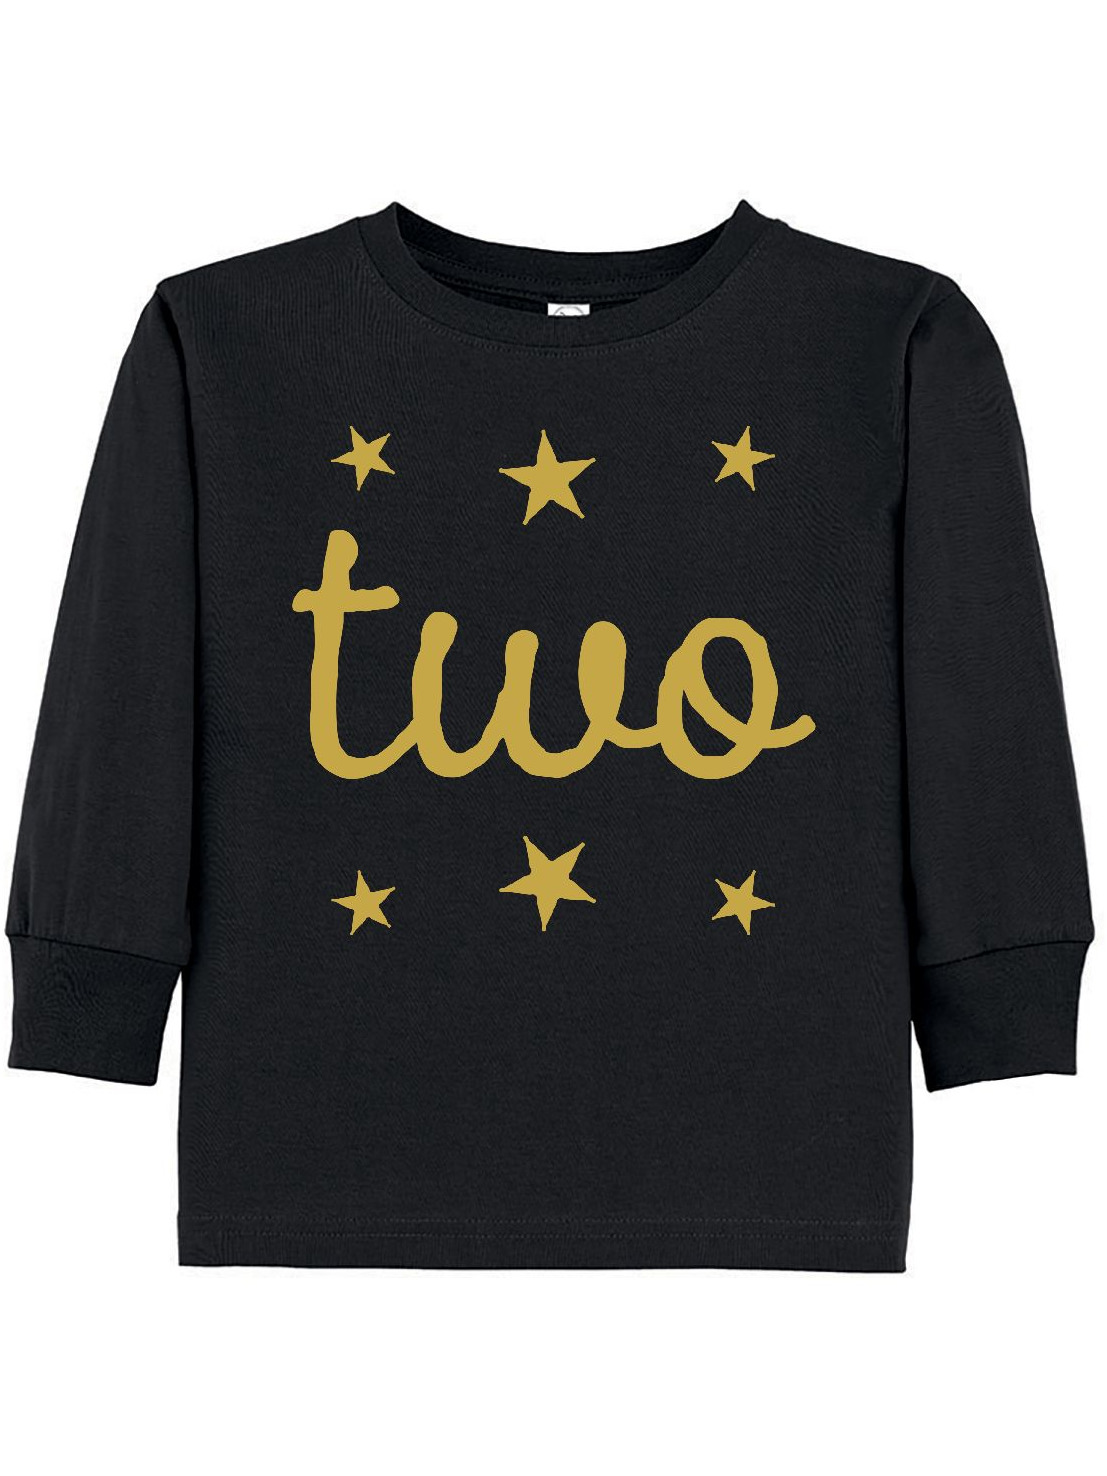 2nd Birthday Outfit Gold Two Toddler Long Sleeve T-Shirt